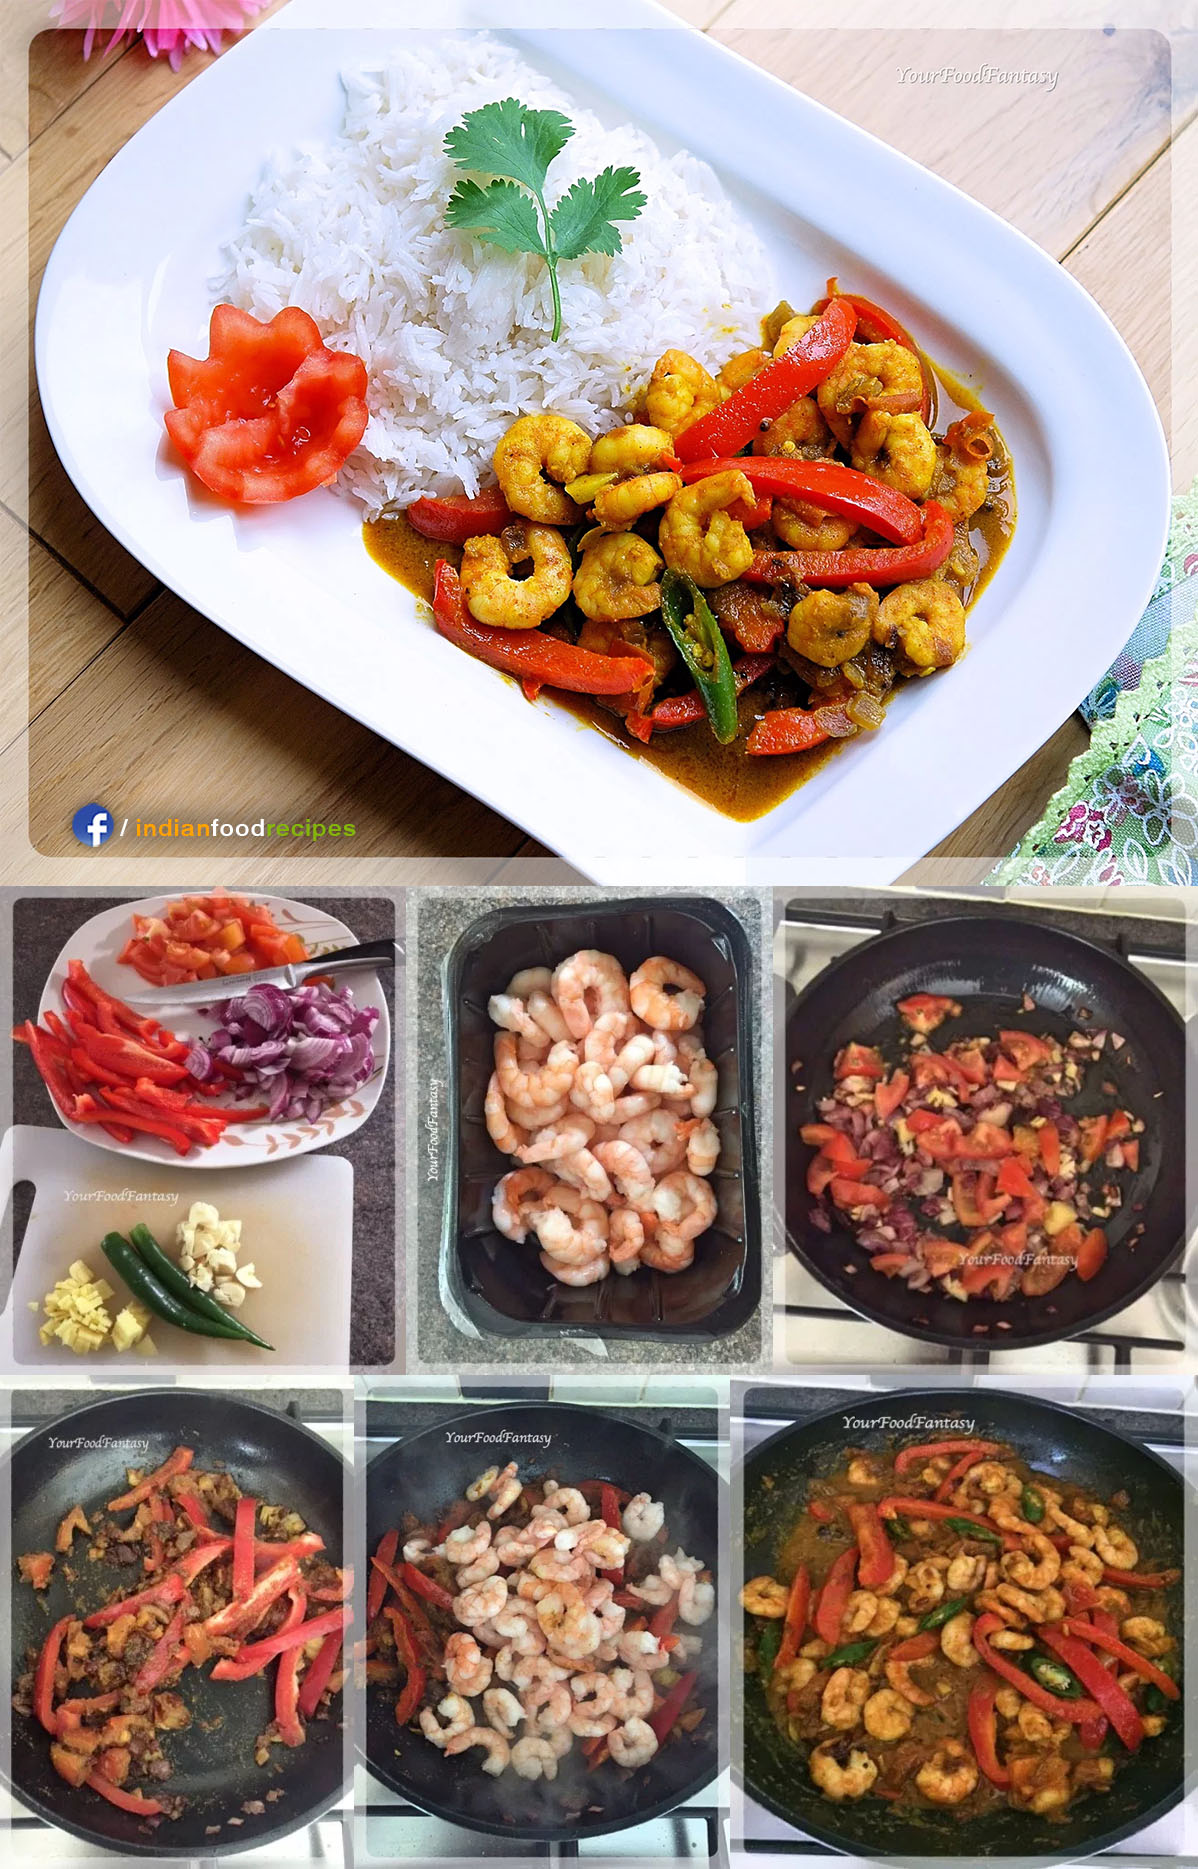 Prawn Capsicum Curry recipe step by step pictures